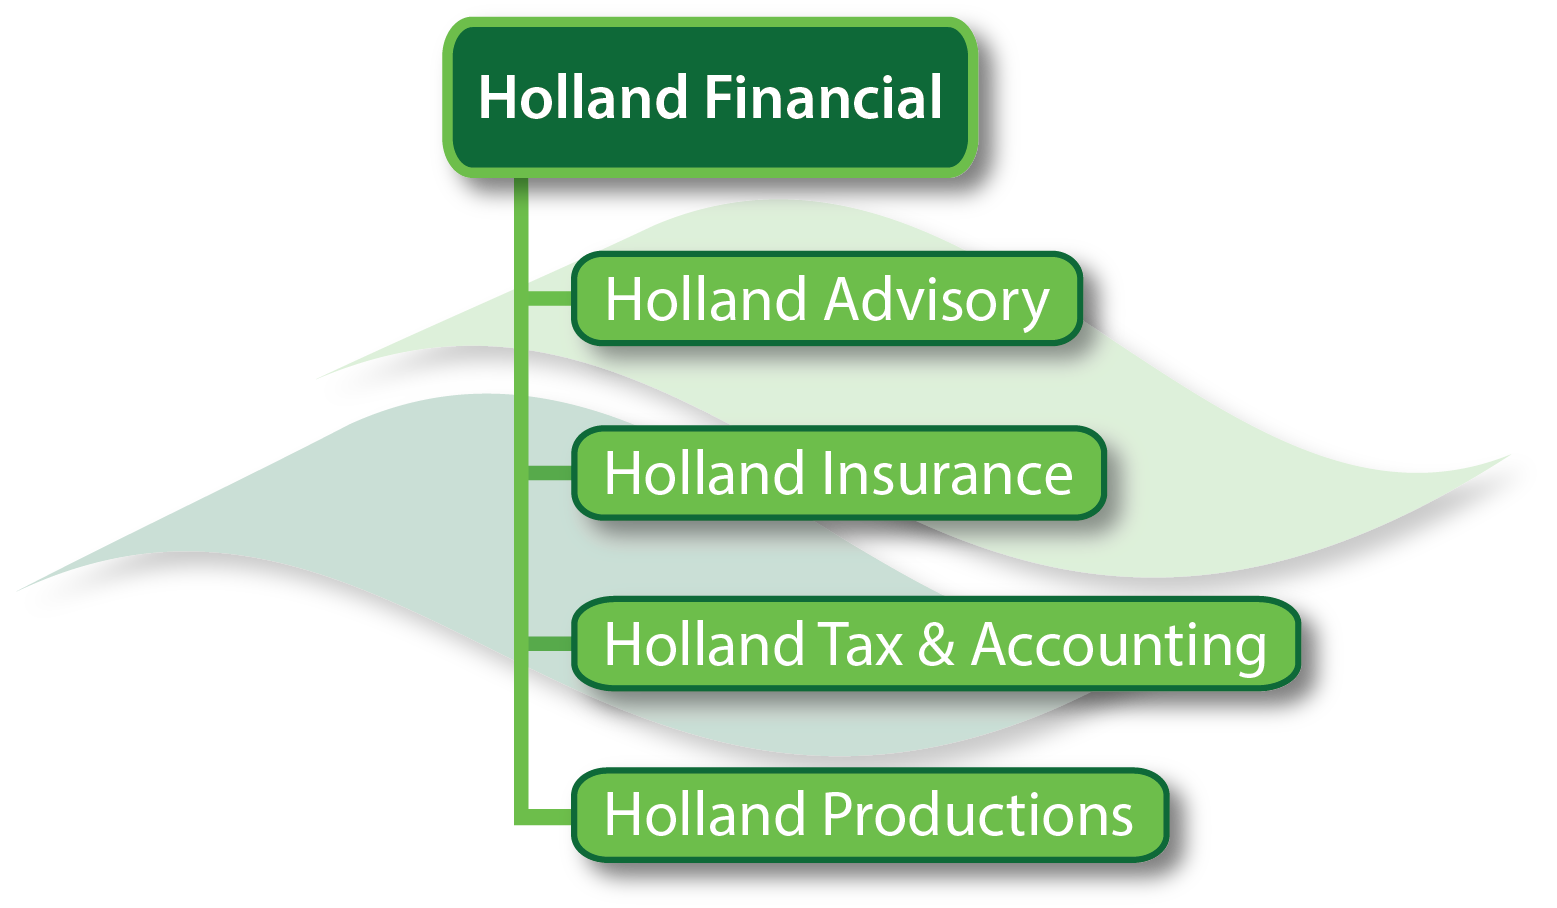 Holland Financial